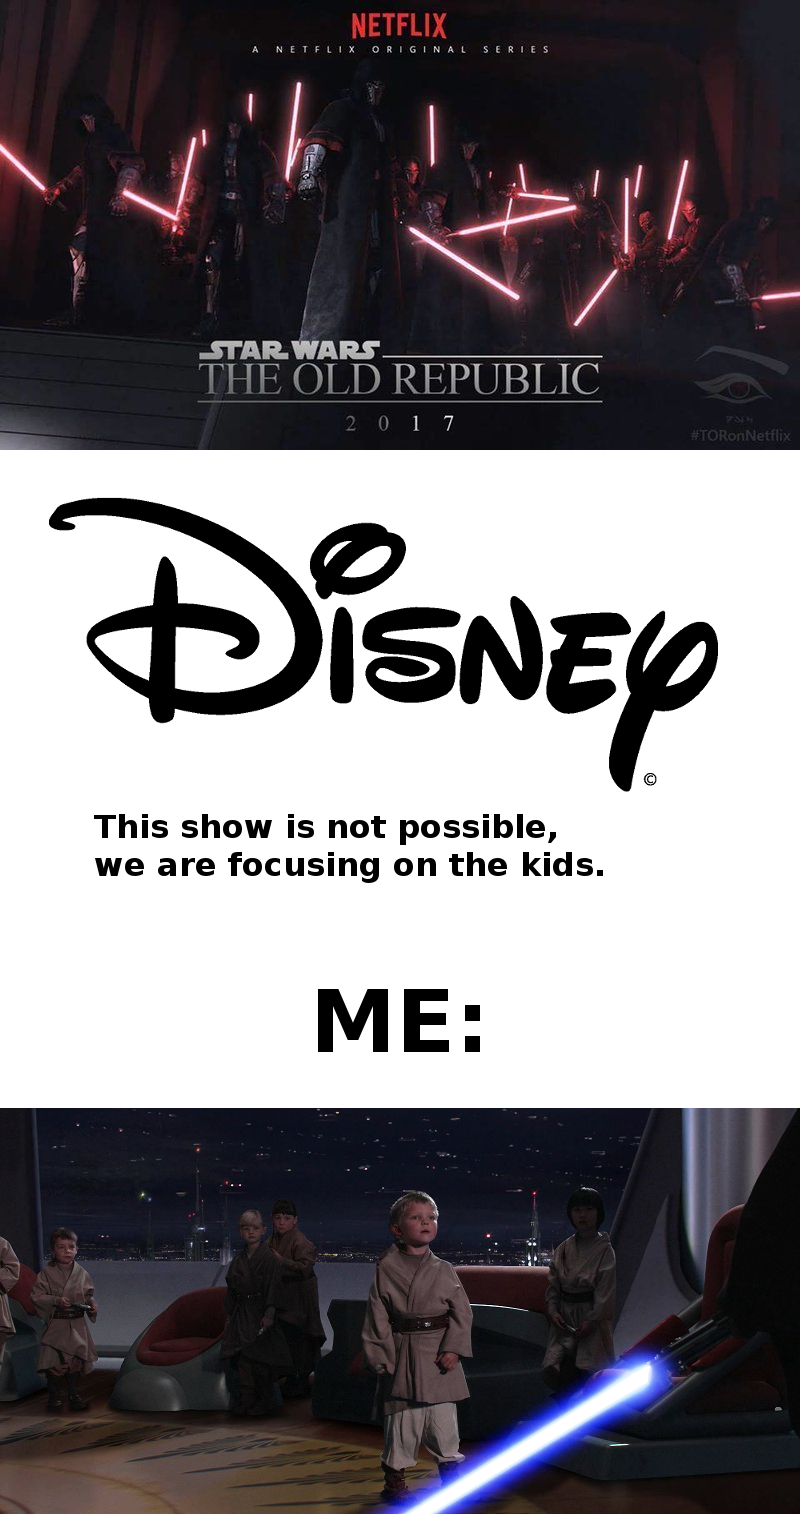 That Is Stupid It Is Not Just For The Kids It Is For All Ages People Say That The Clone Wars Were For Star Wars Memes Star Wars Jokes Star